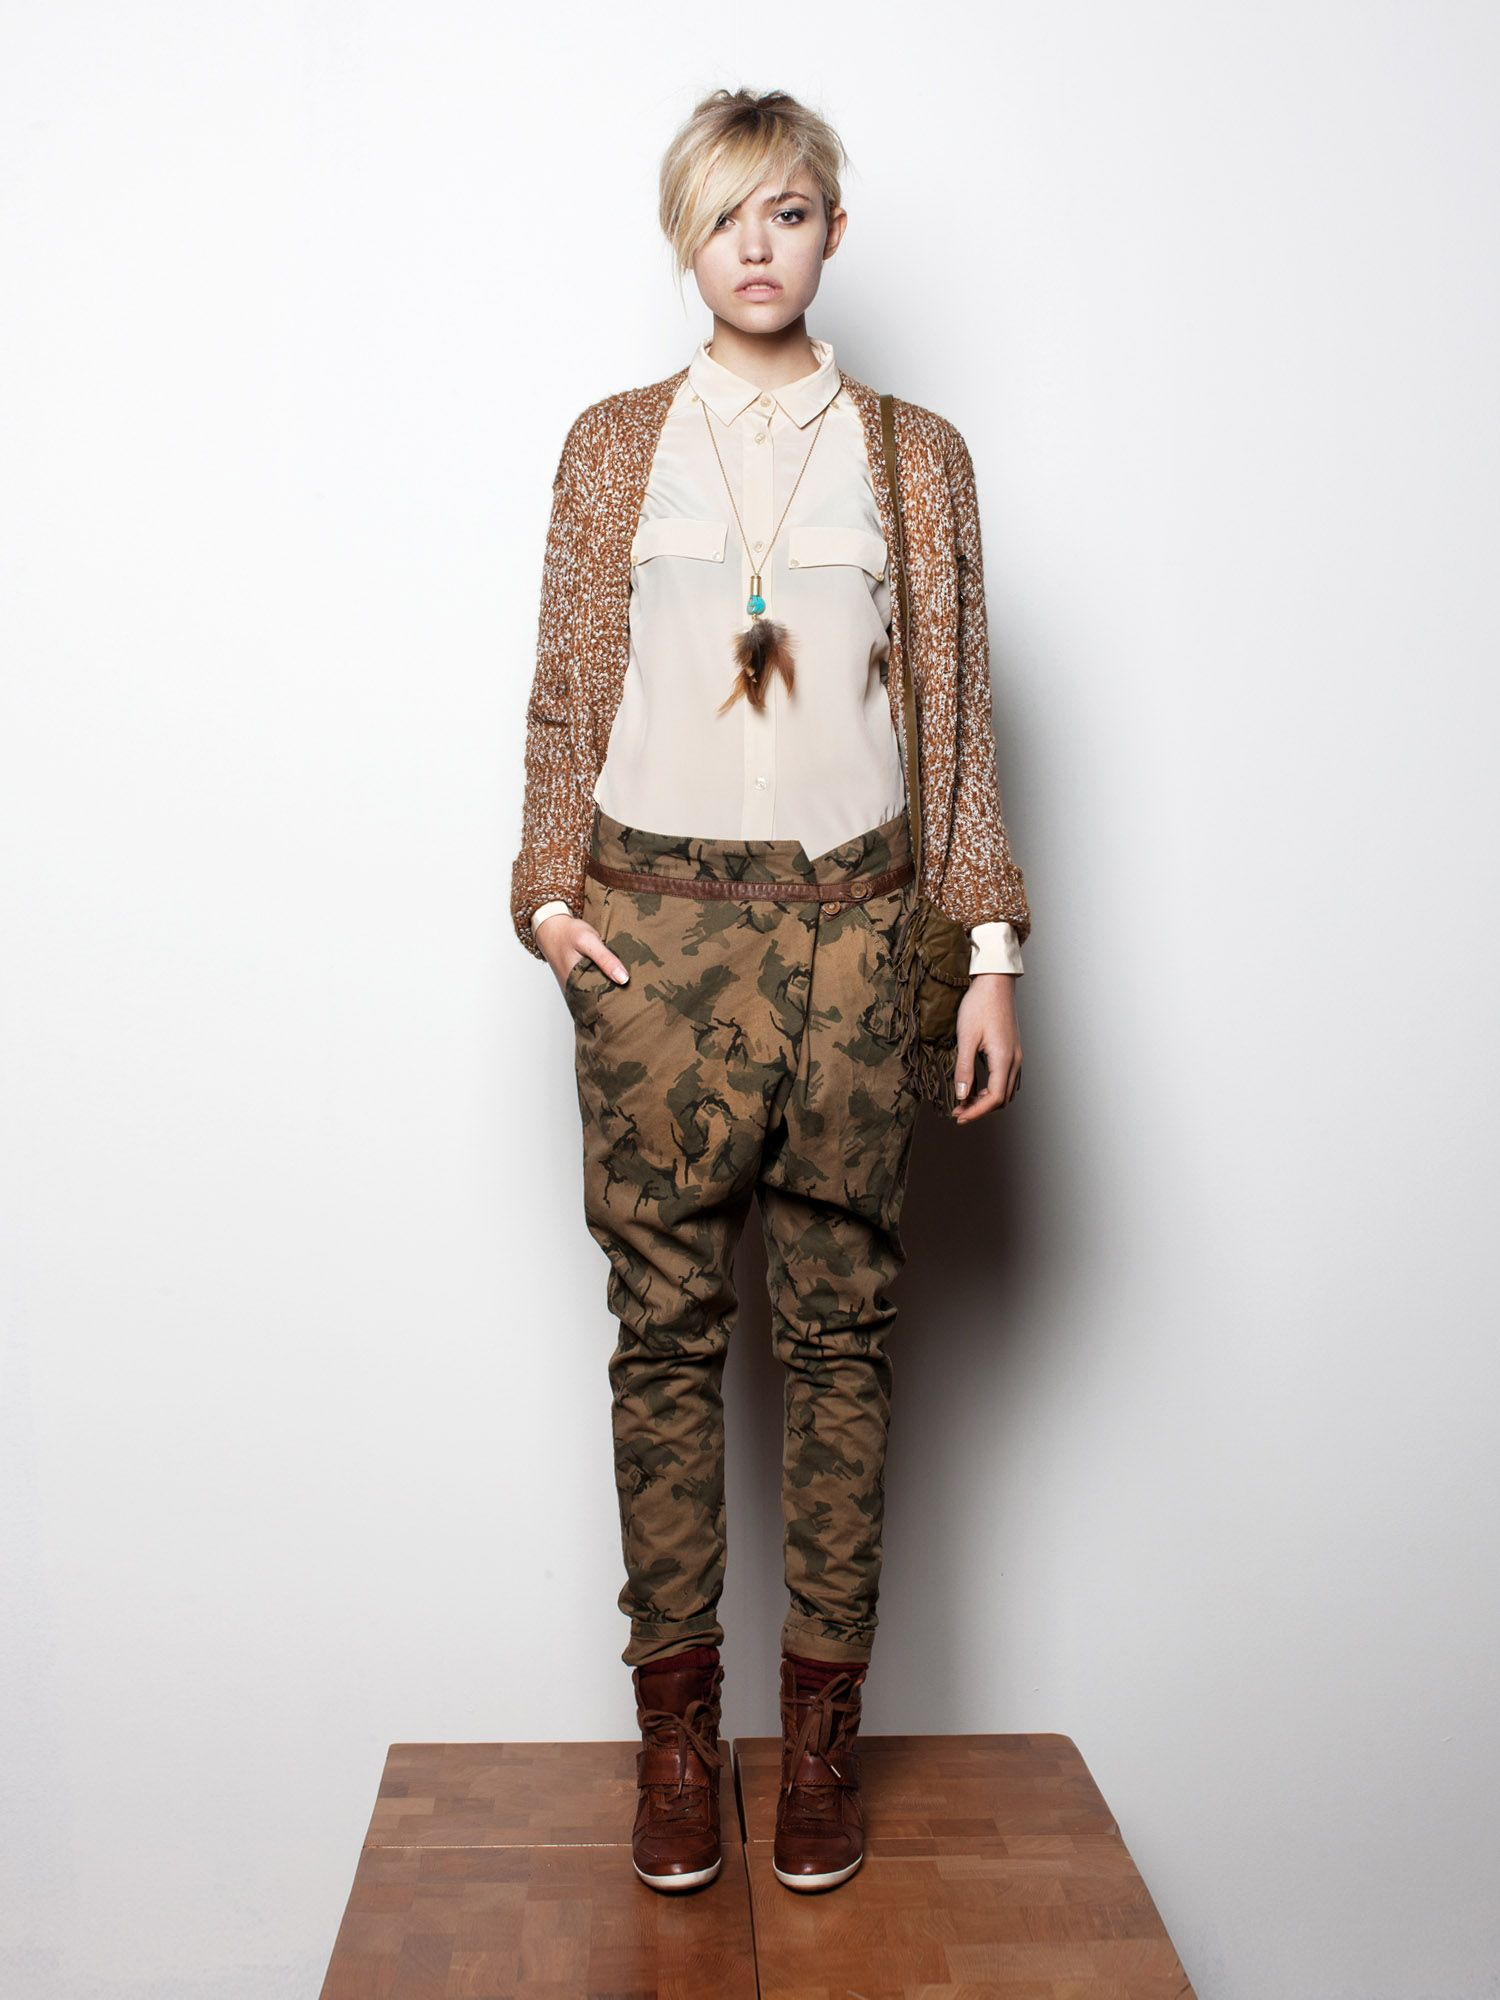 Scotch maison fall winter lookbook pictures